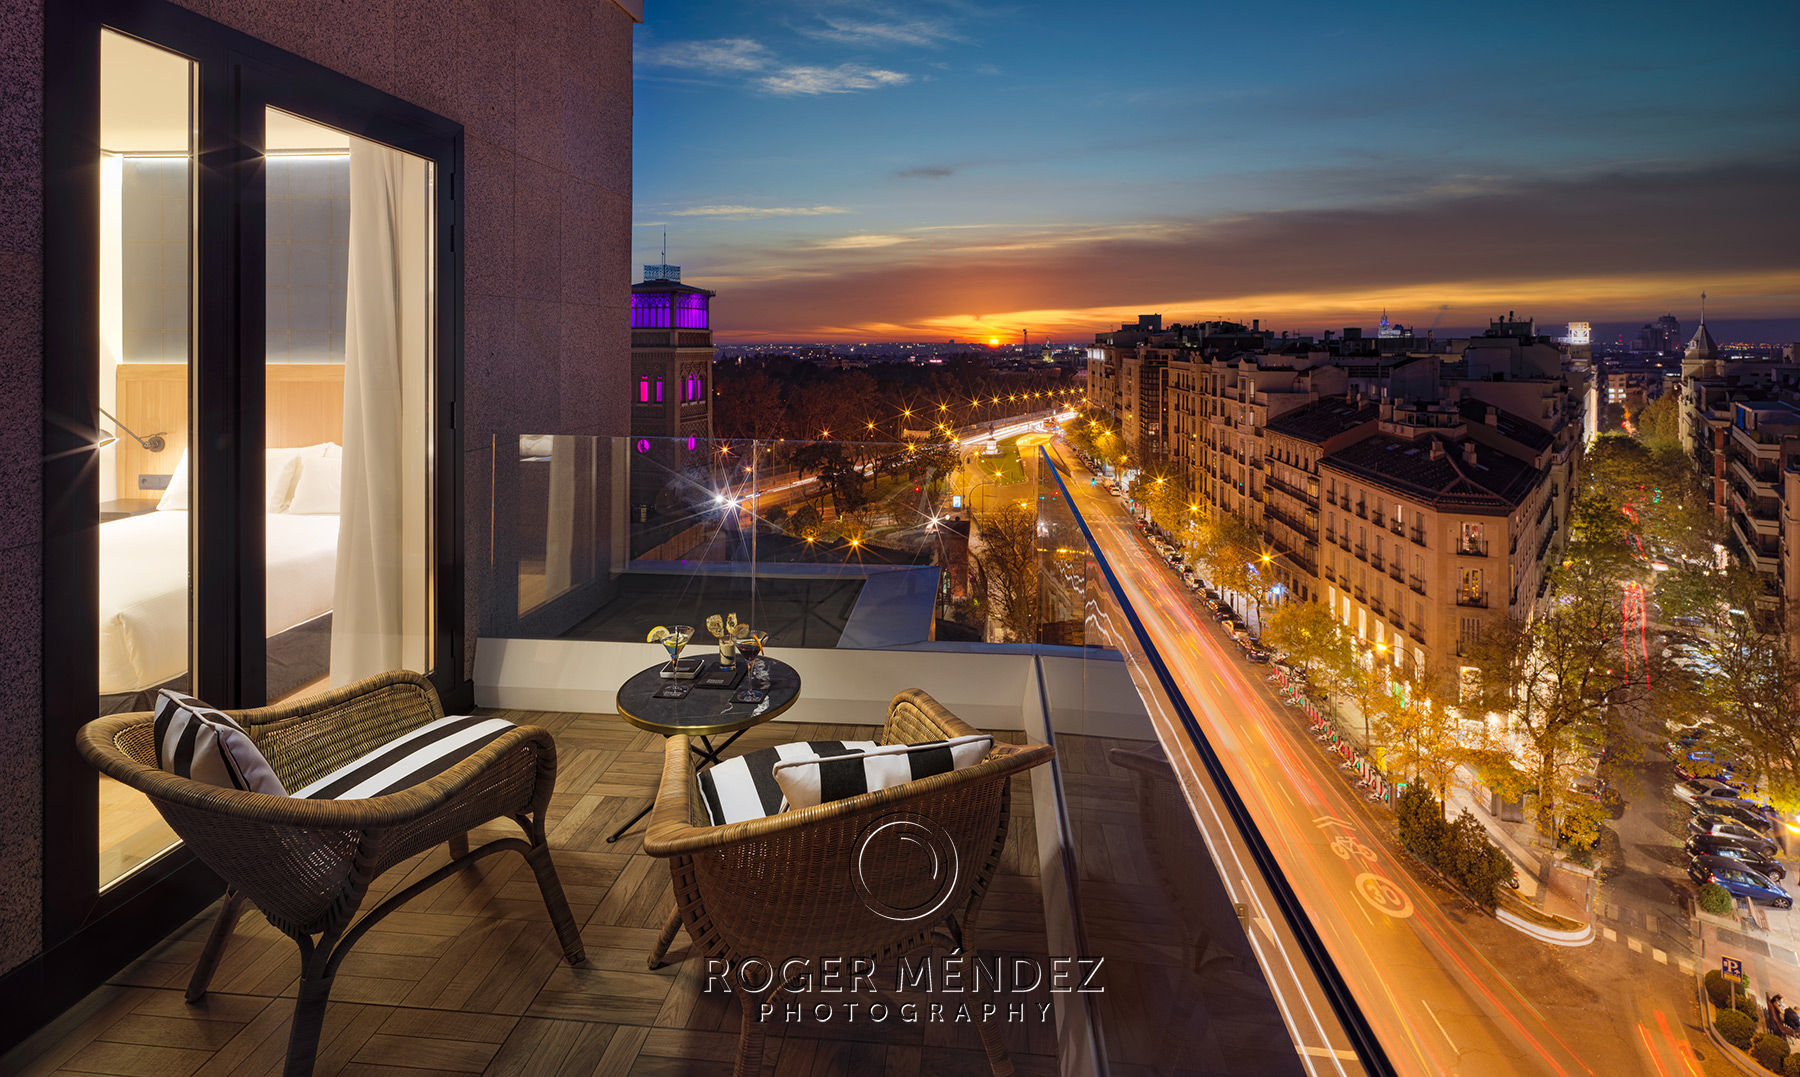 Room terrace at sunset